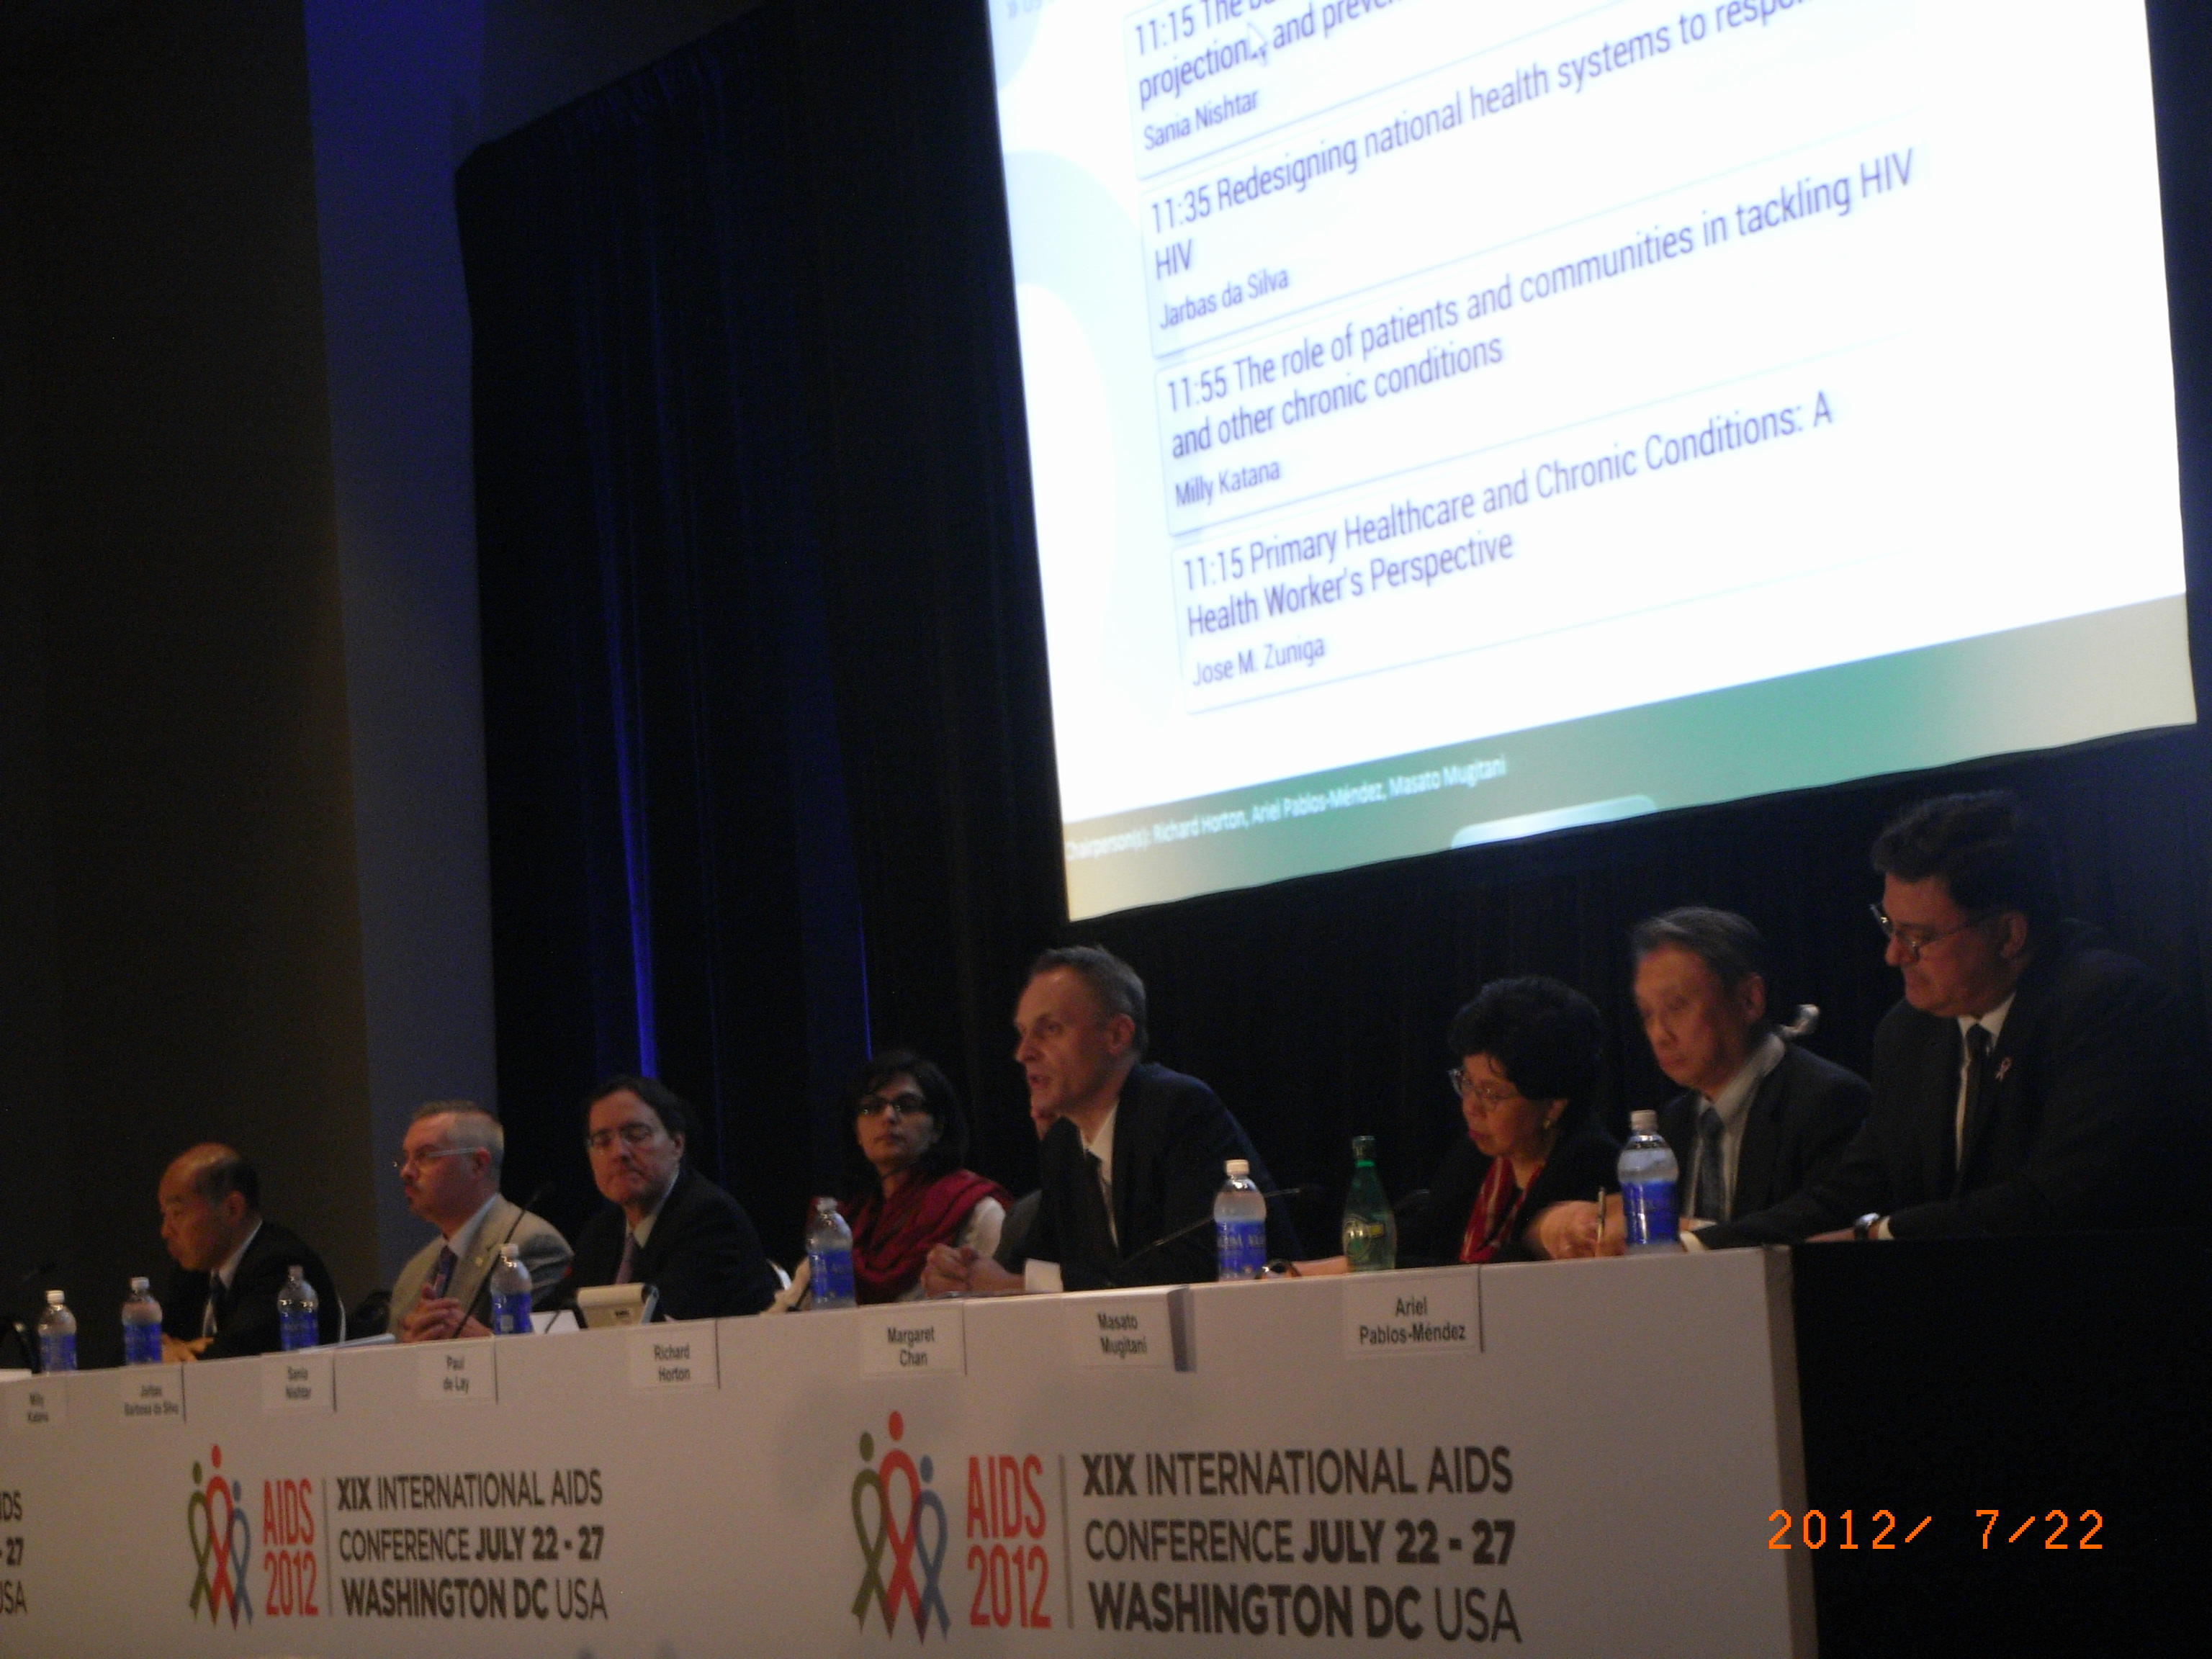 Learning from HIV experience: An NCDs and health systems perspective